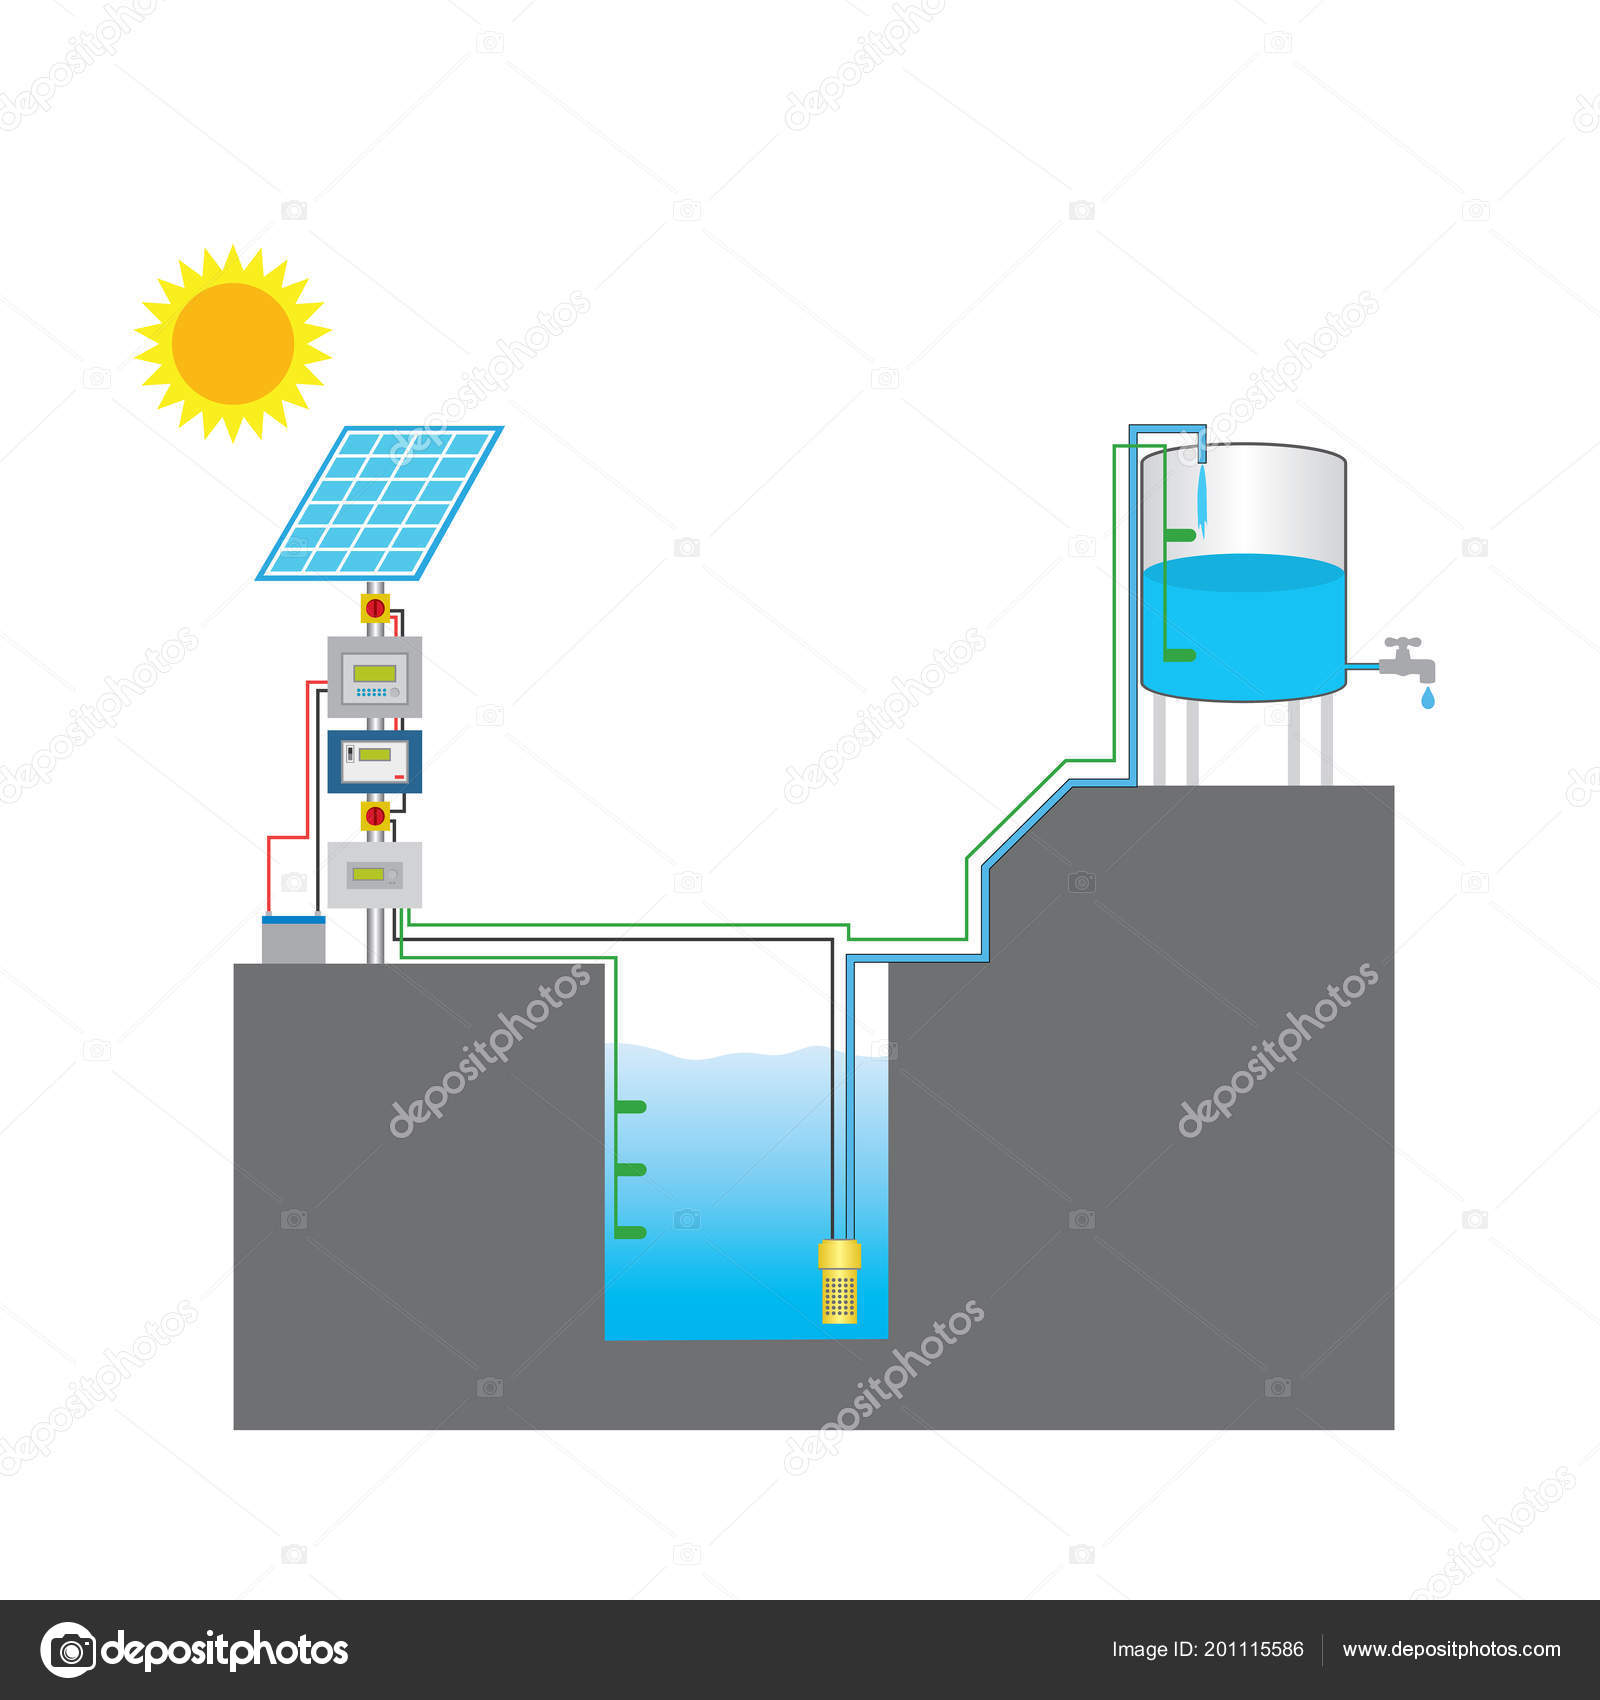 by photovoltaic panels or the radiated thermal energy available from  collected sunlight as opposed to grid electricity or diesel run water pumps